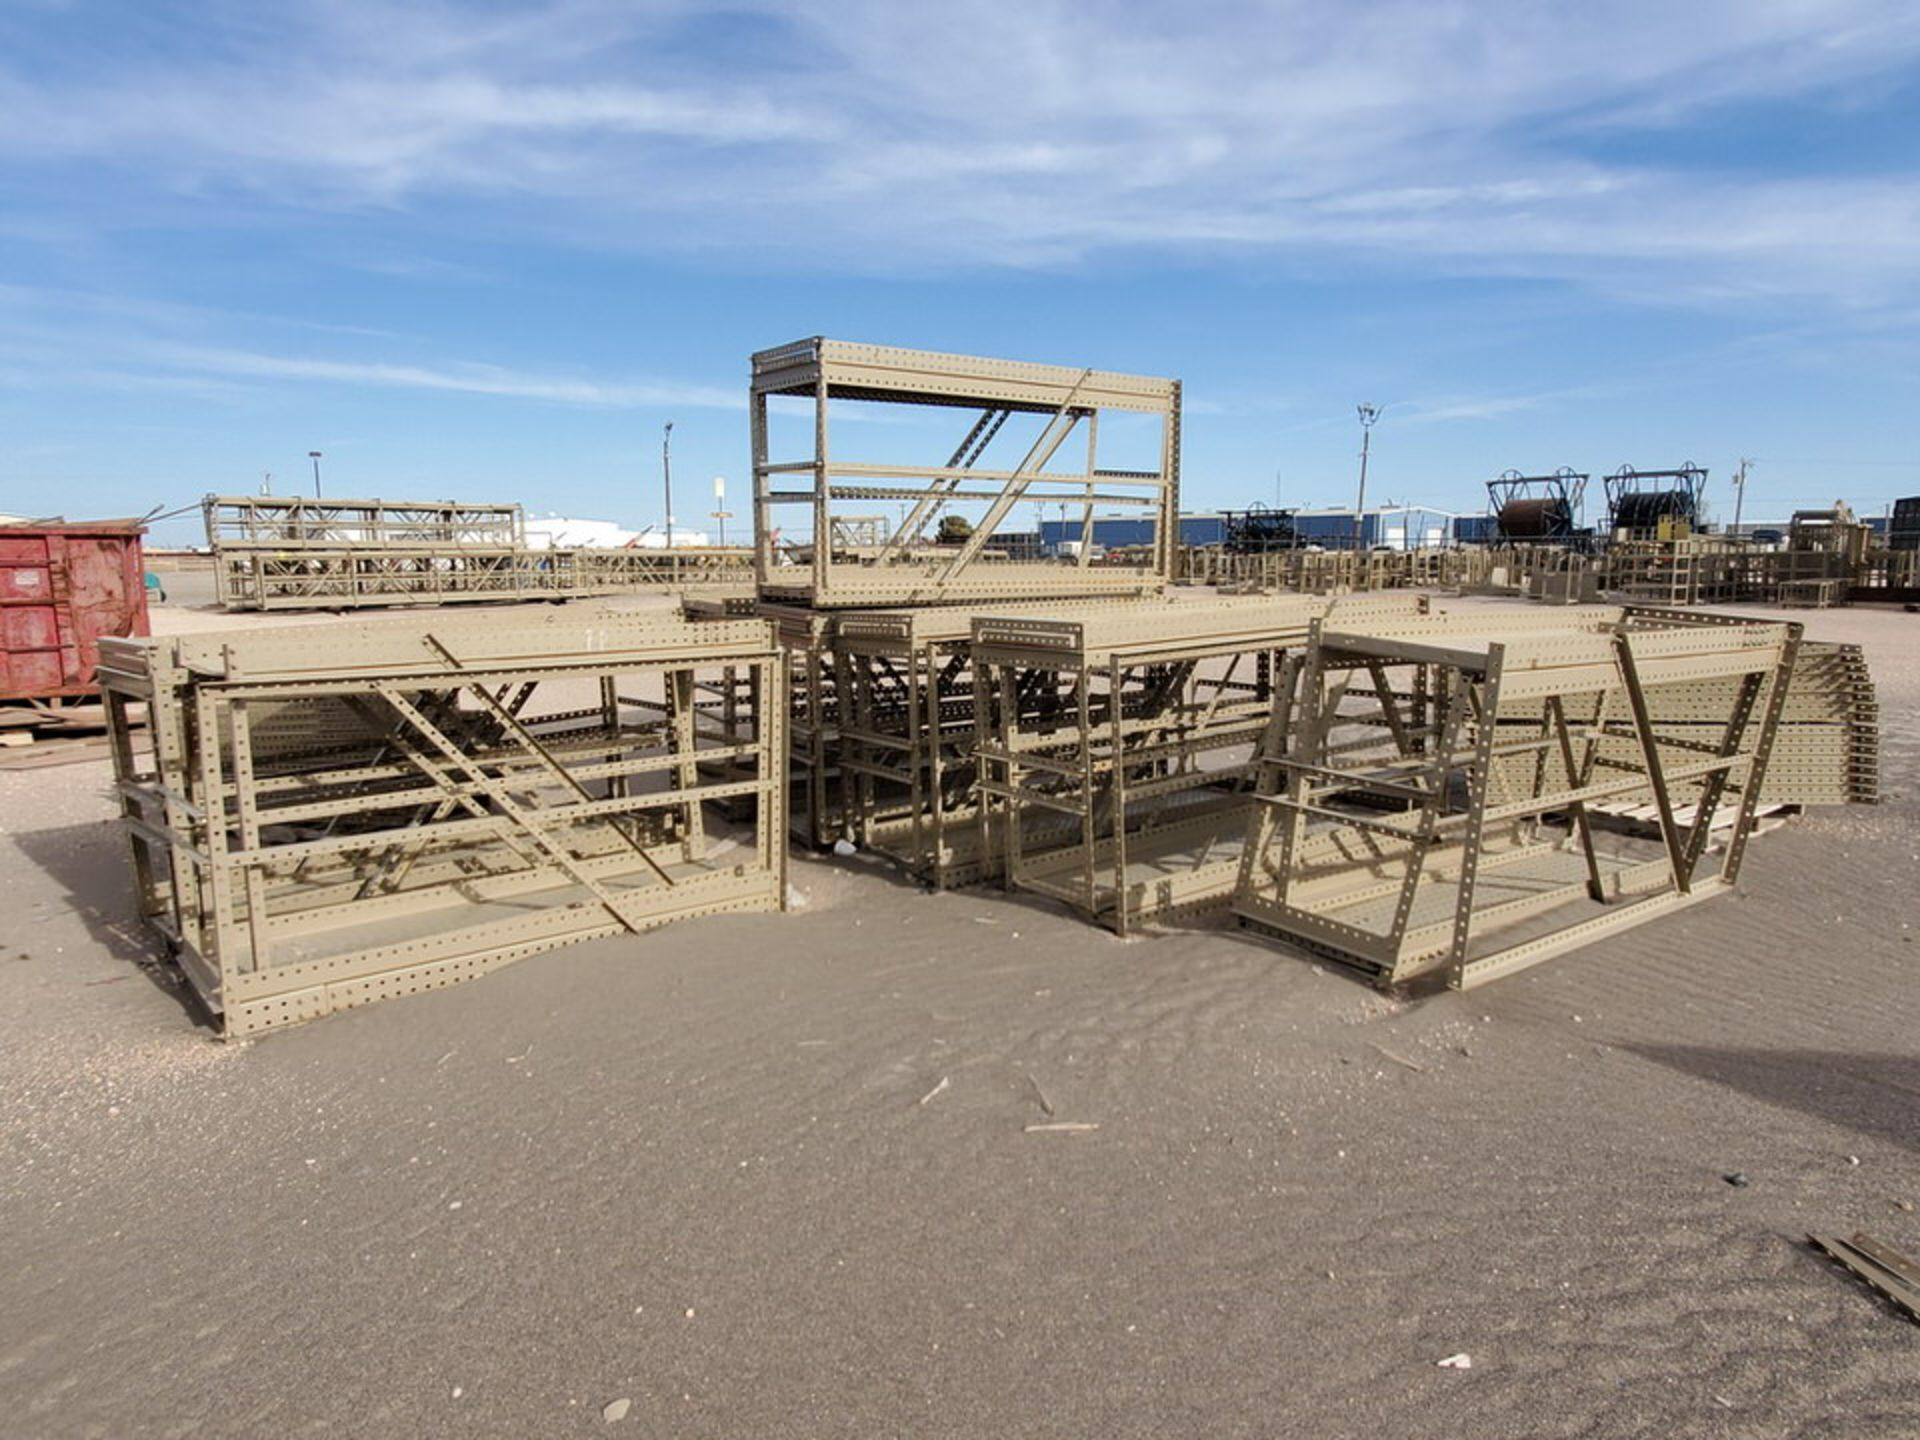 Disassembled Catwalk Sections - Image 17 of 20